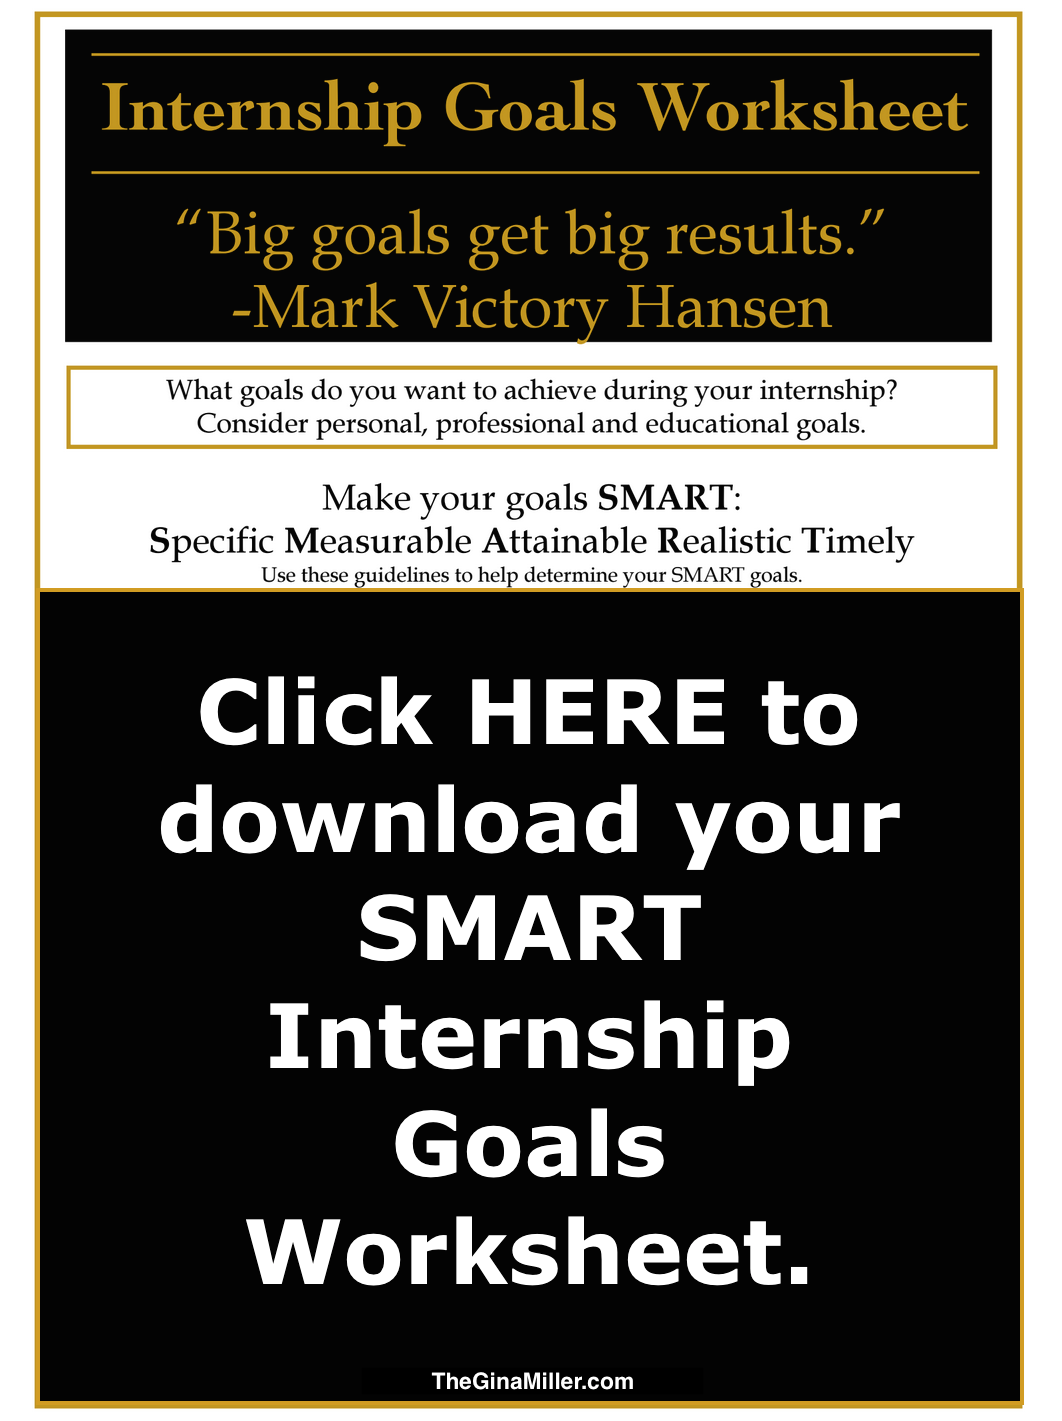 Get The Most Out Of Your Internship!